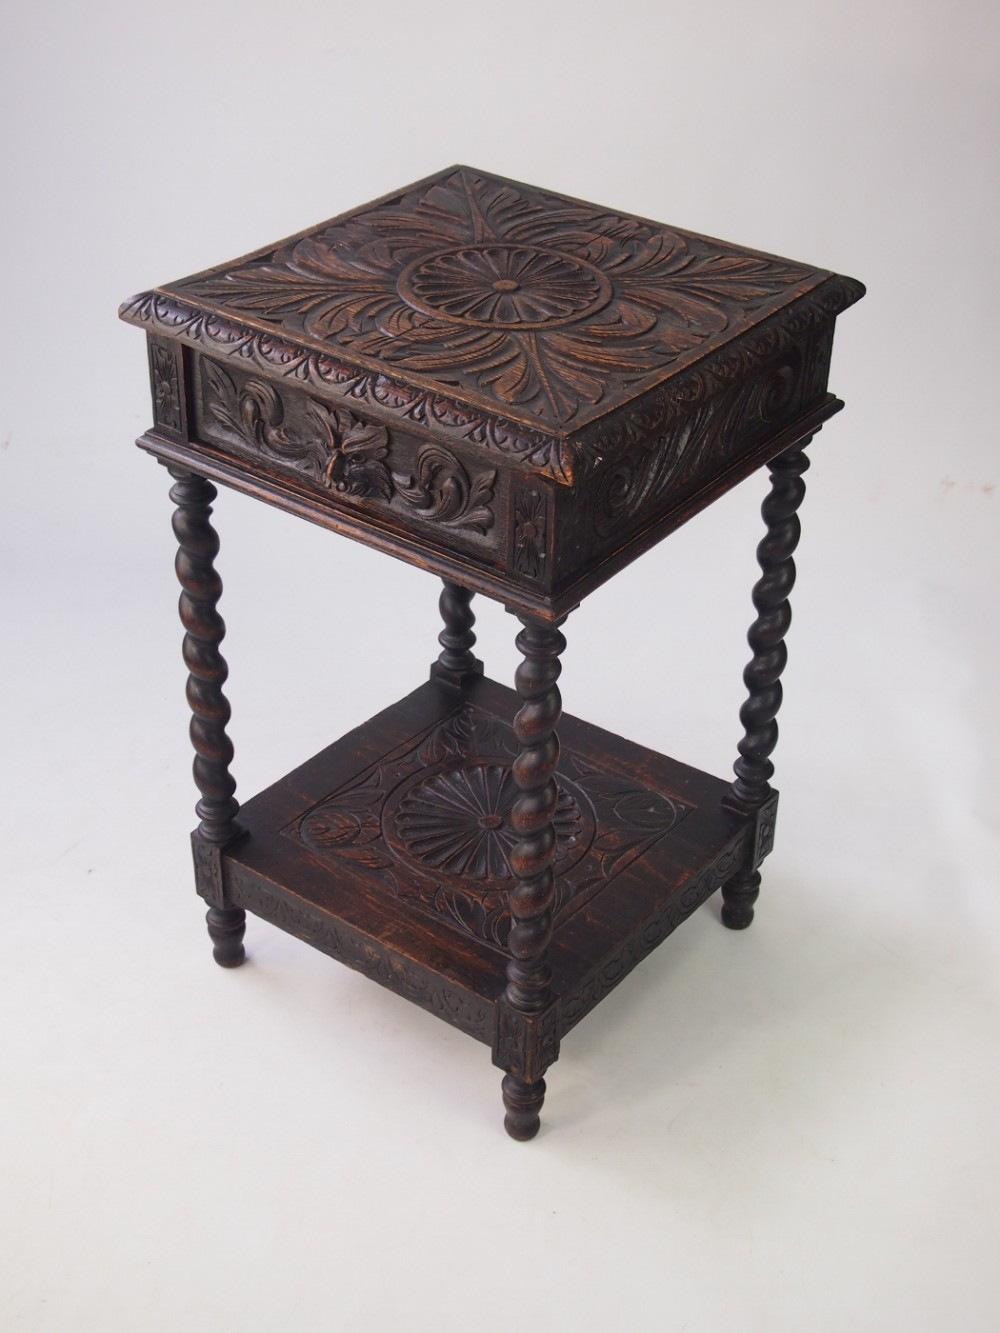 Small Victorian Gothic Revival Oak Side Table. Antique Photo